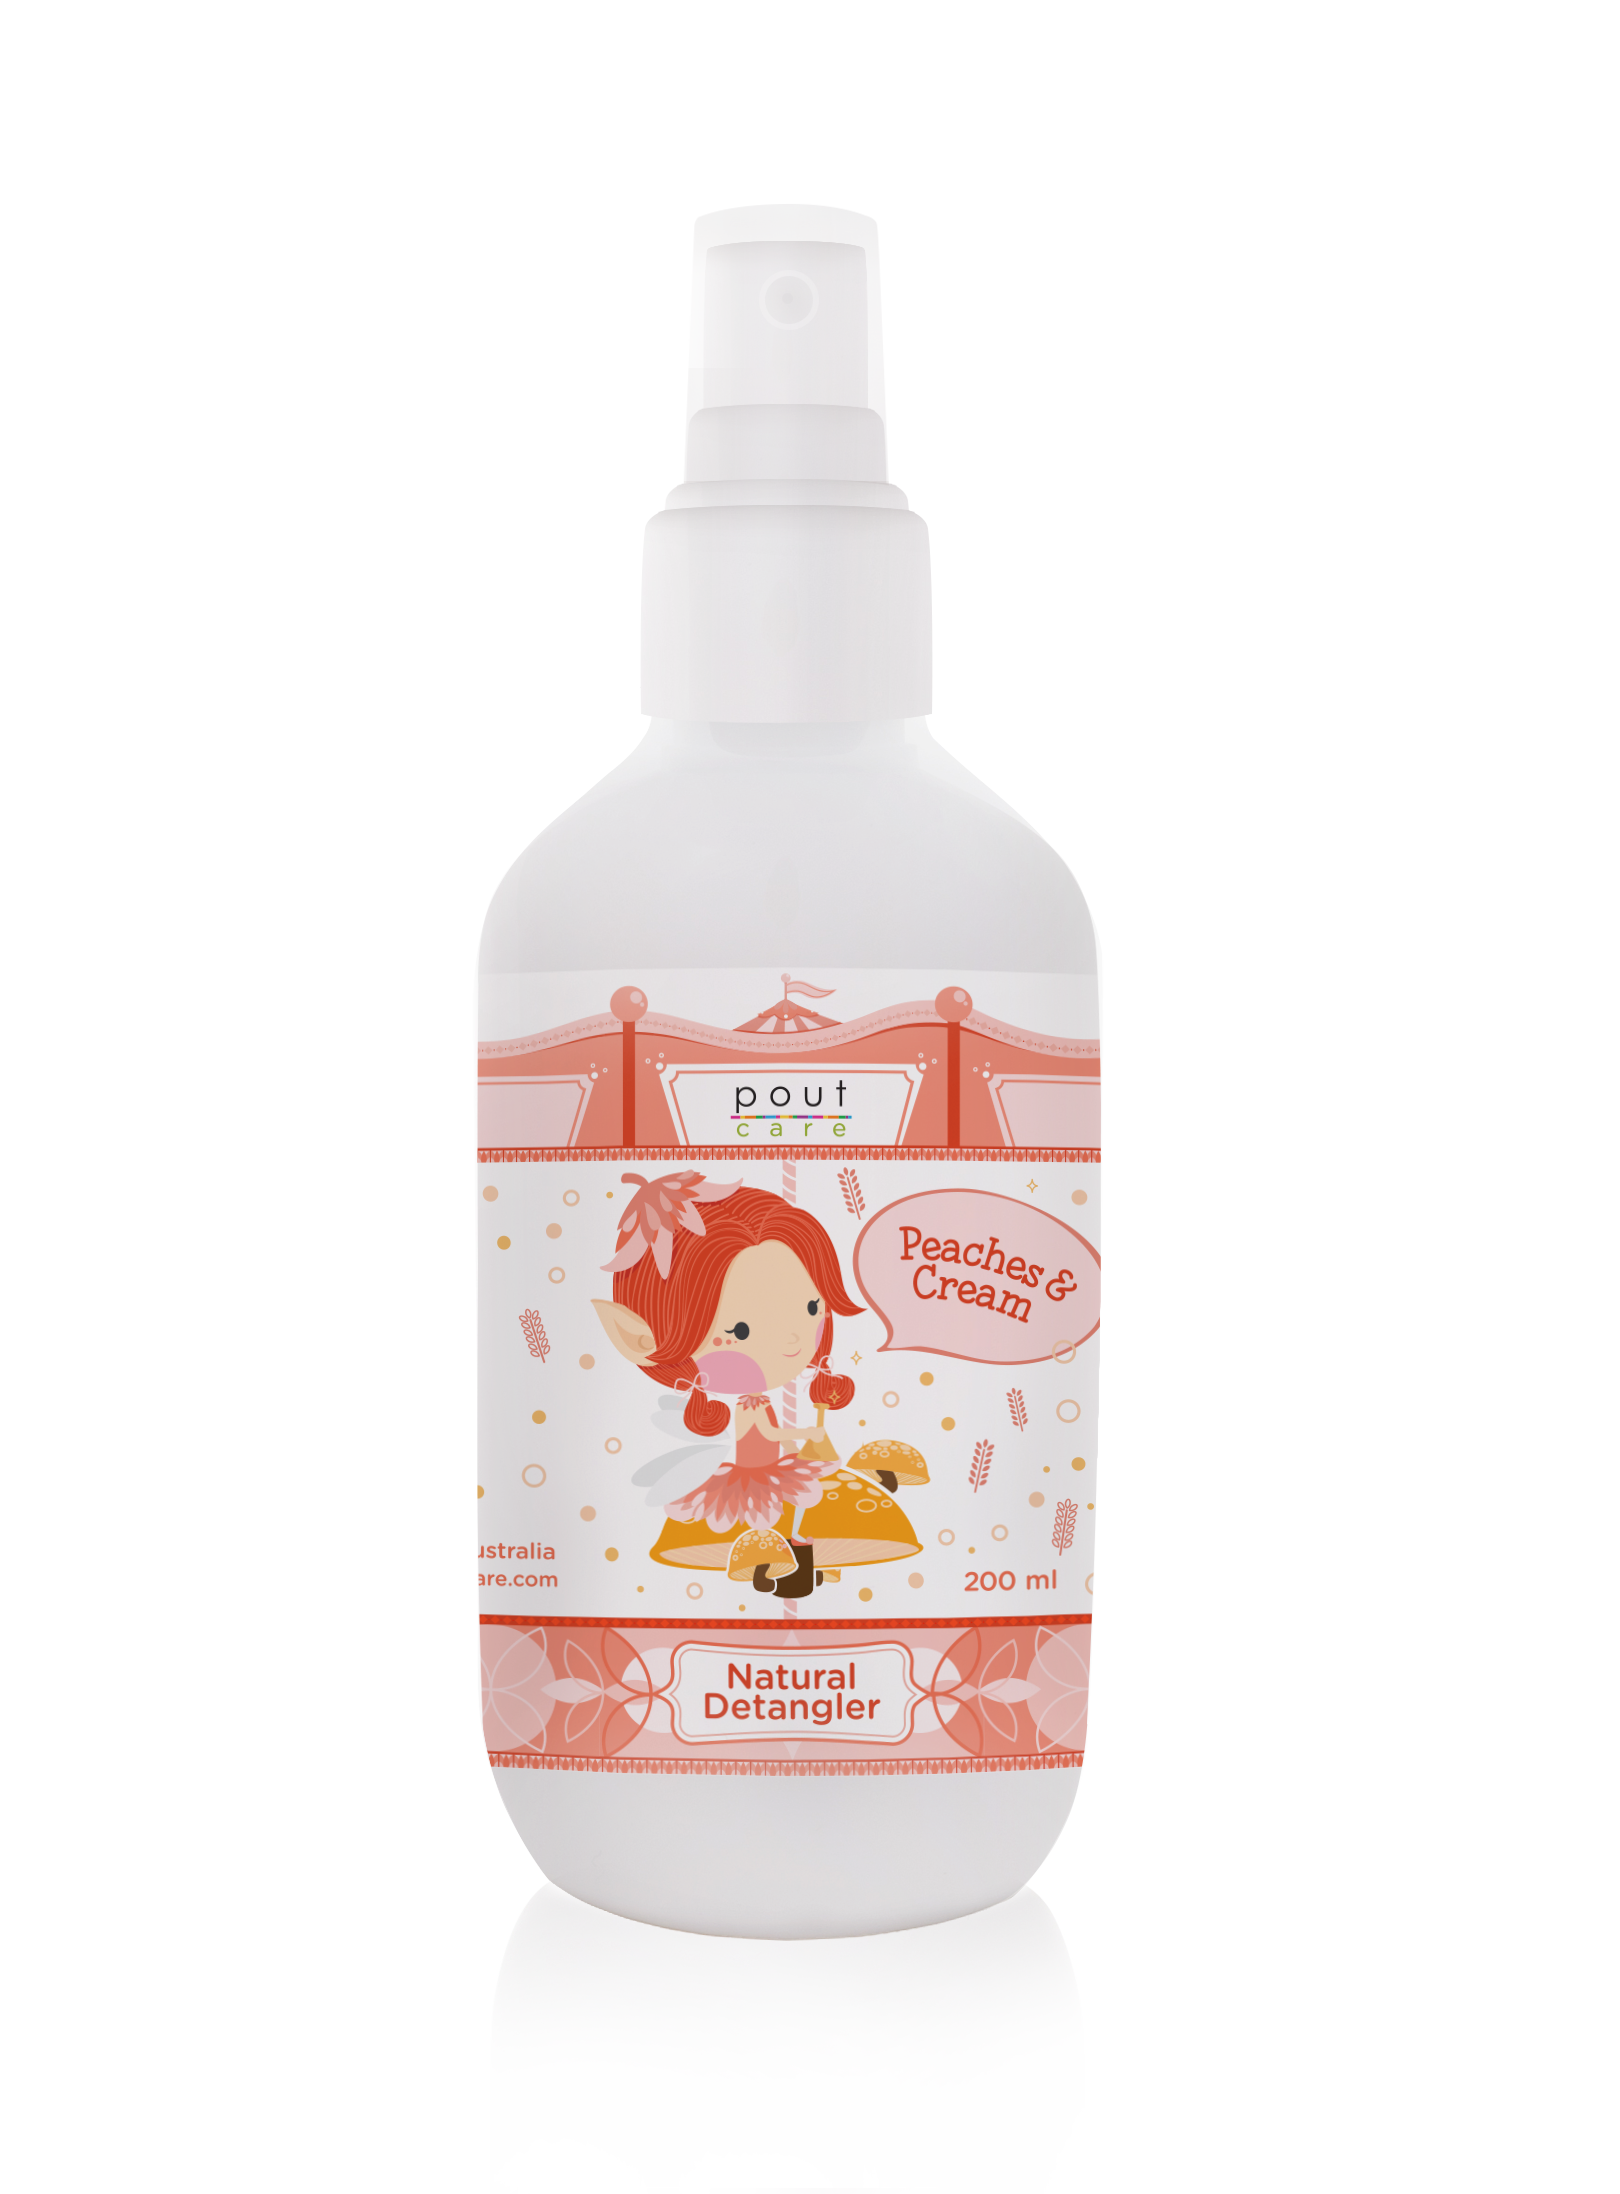 pout Care Peaches n Cream Natural Detangler 200ml